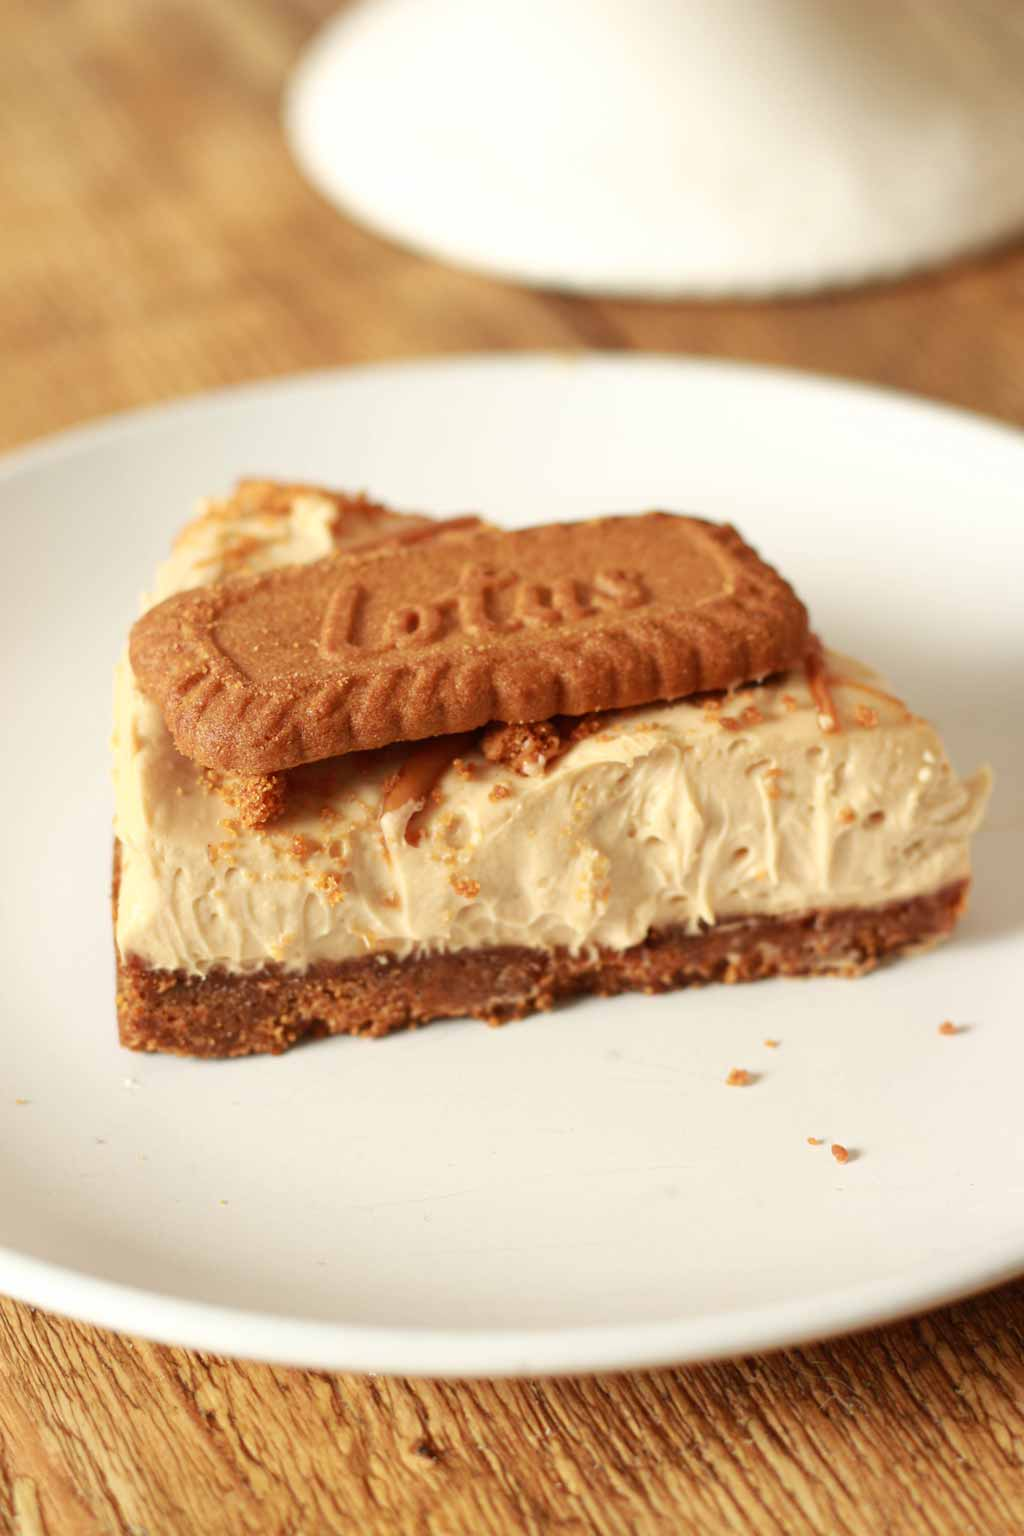 Slice Of Vegan Cheesecake With A Biscoff Biscuit On Top